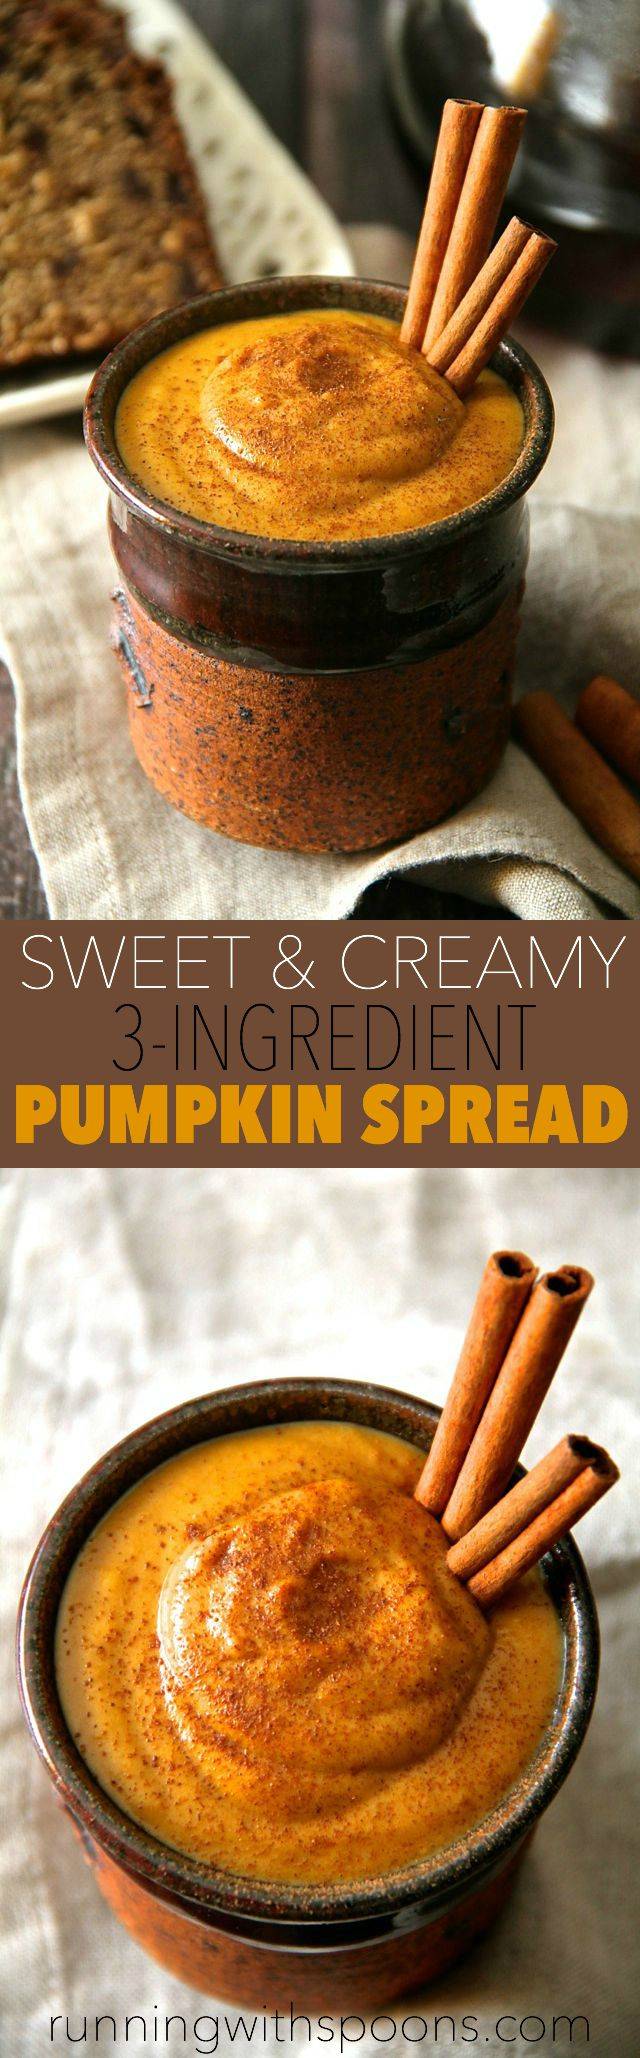 Sweet and Creamy Pumpkin Spread -- made with 3 ingredients and in under 2 minutes, this pumpkin spread is the perfect way to add a touch of fall flavour to your favourite meals and snacks! Vegan, gluten-free, and Paleo friendly || runningwithspoons.com #pumpkin #fall #vegan